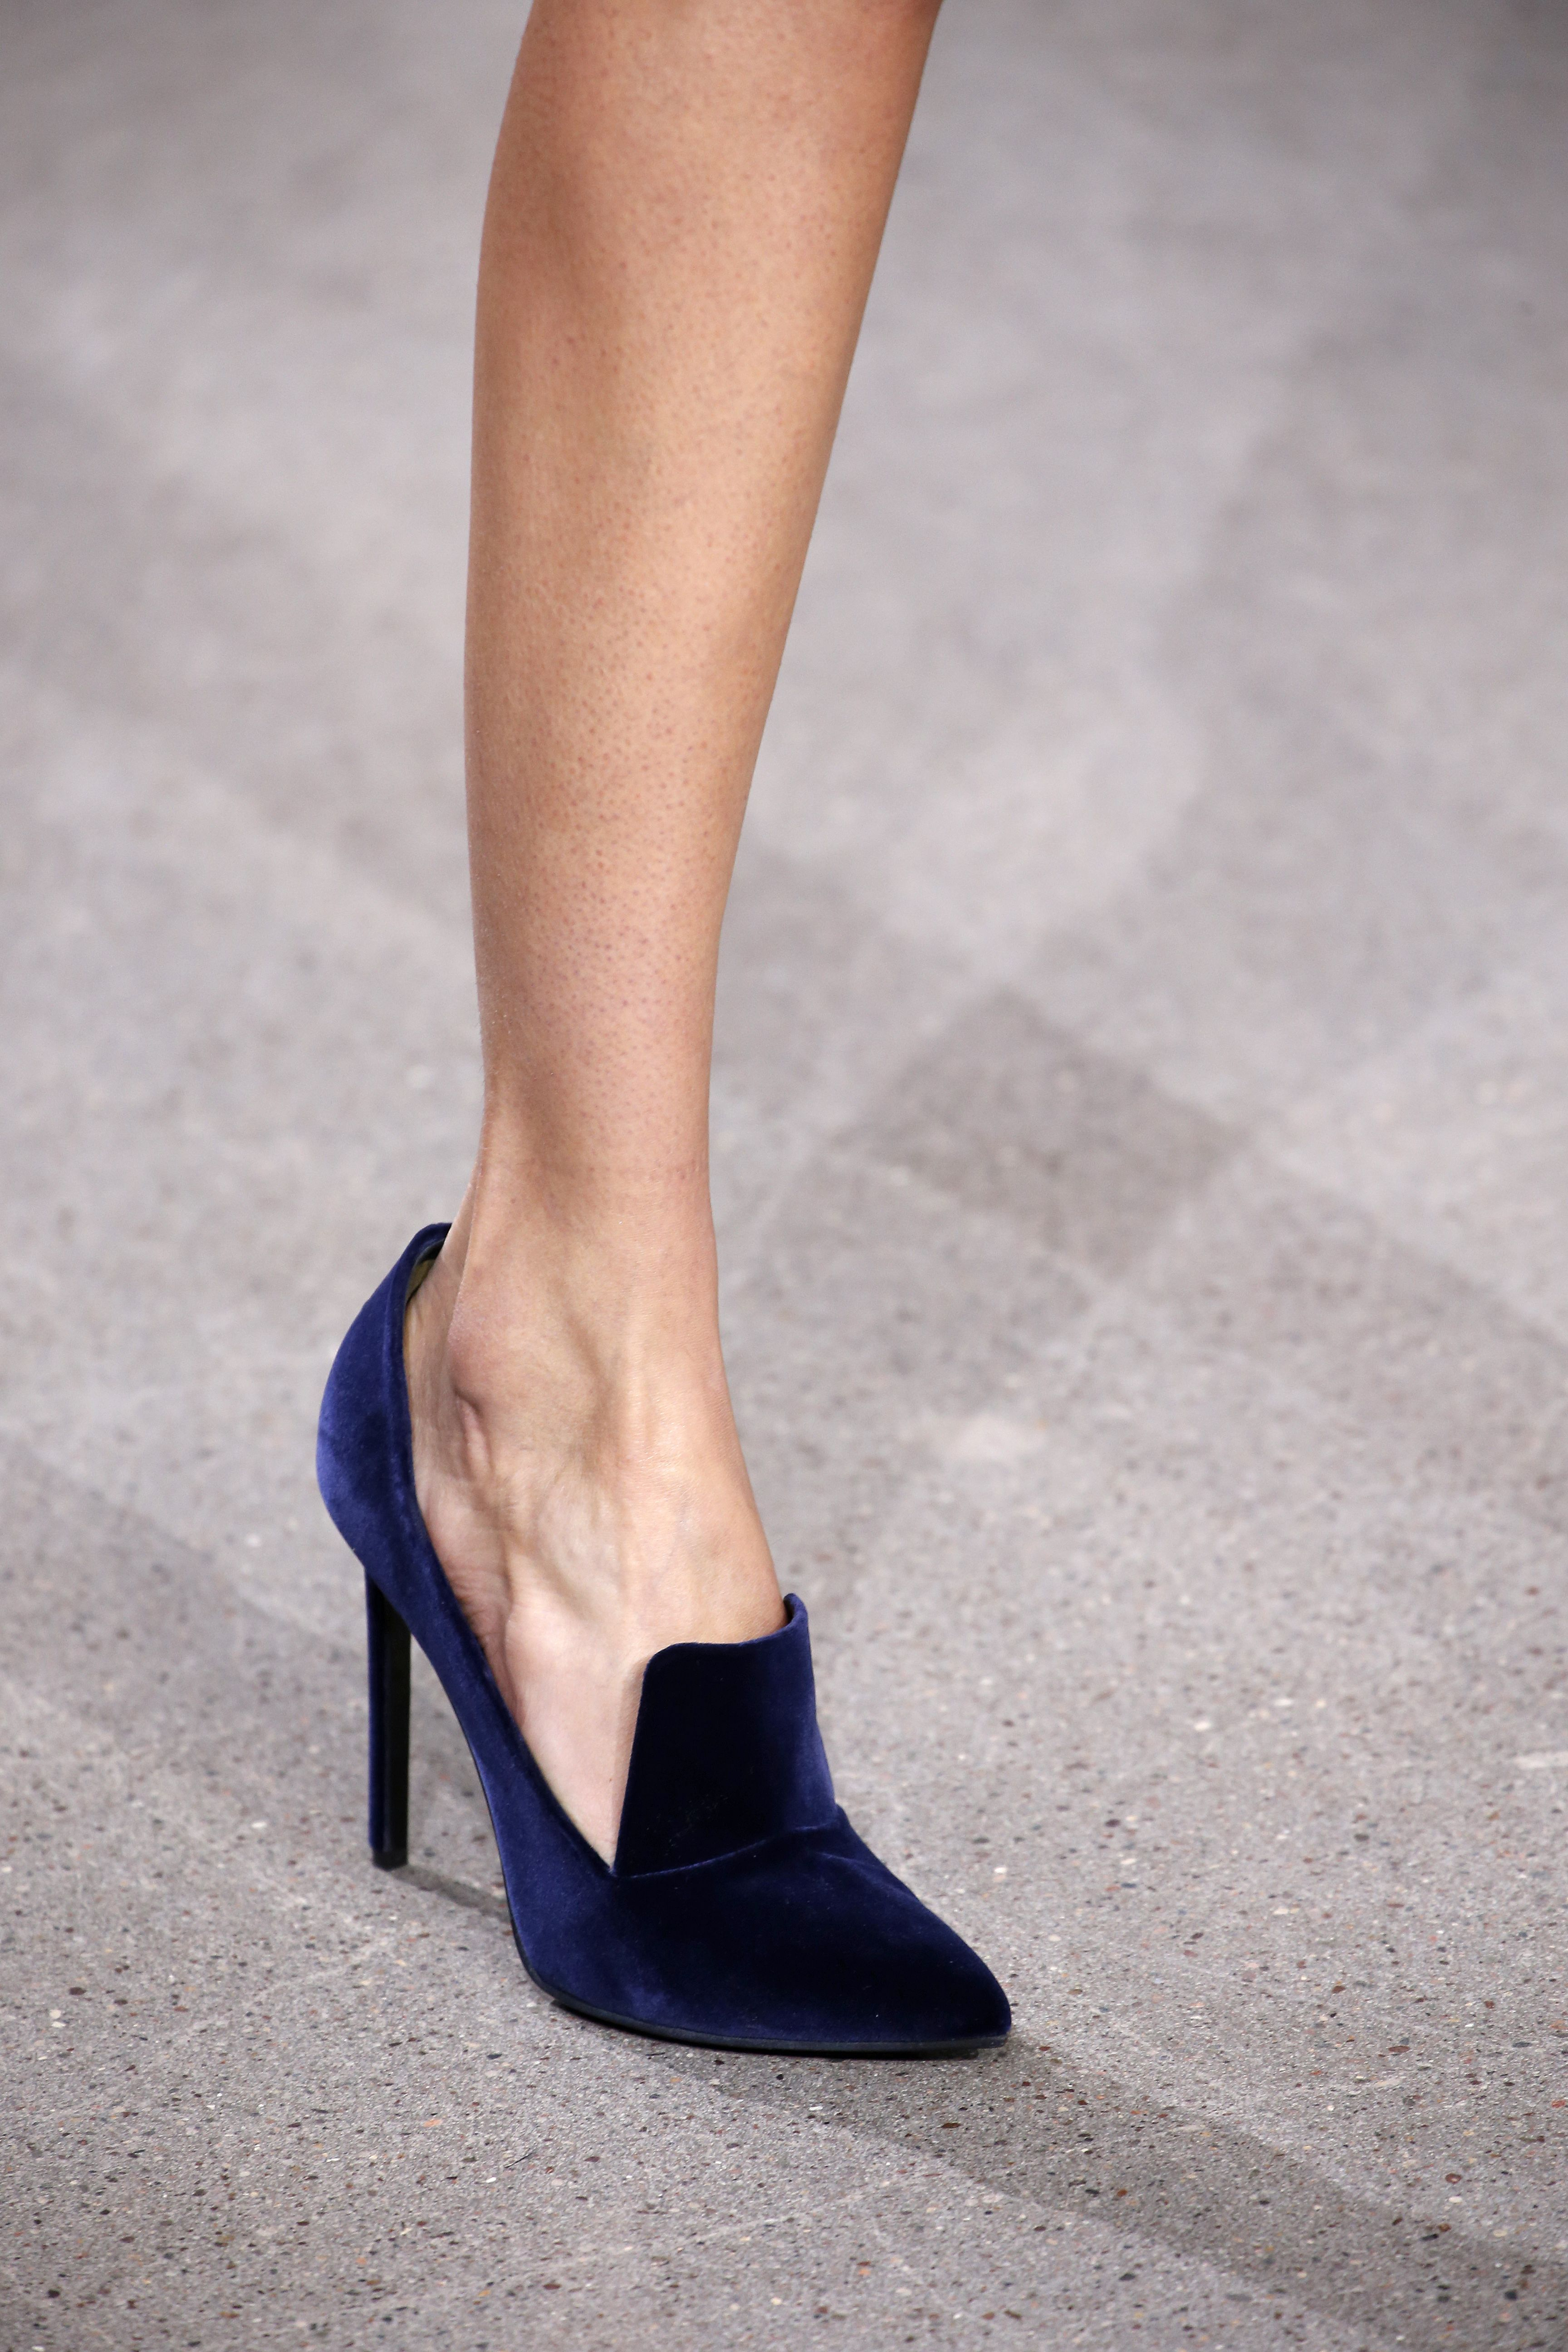 82a288918998 Dark Blue Velvet High Heel Loafers - Jason Wu FW16  https   ladieshighheelshoes.